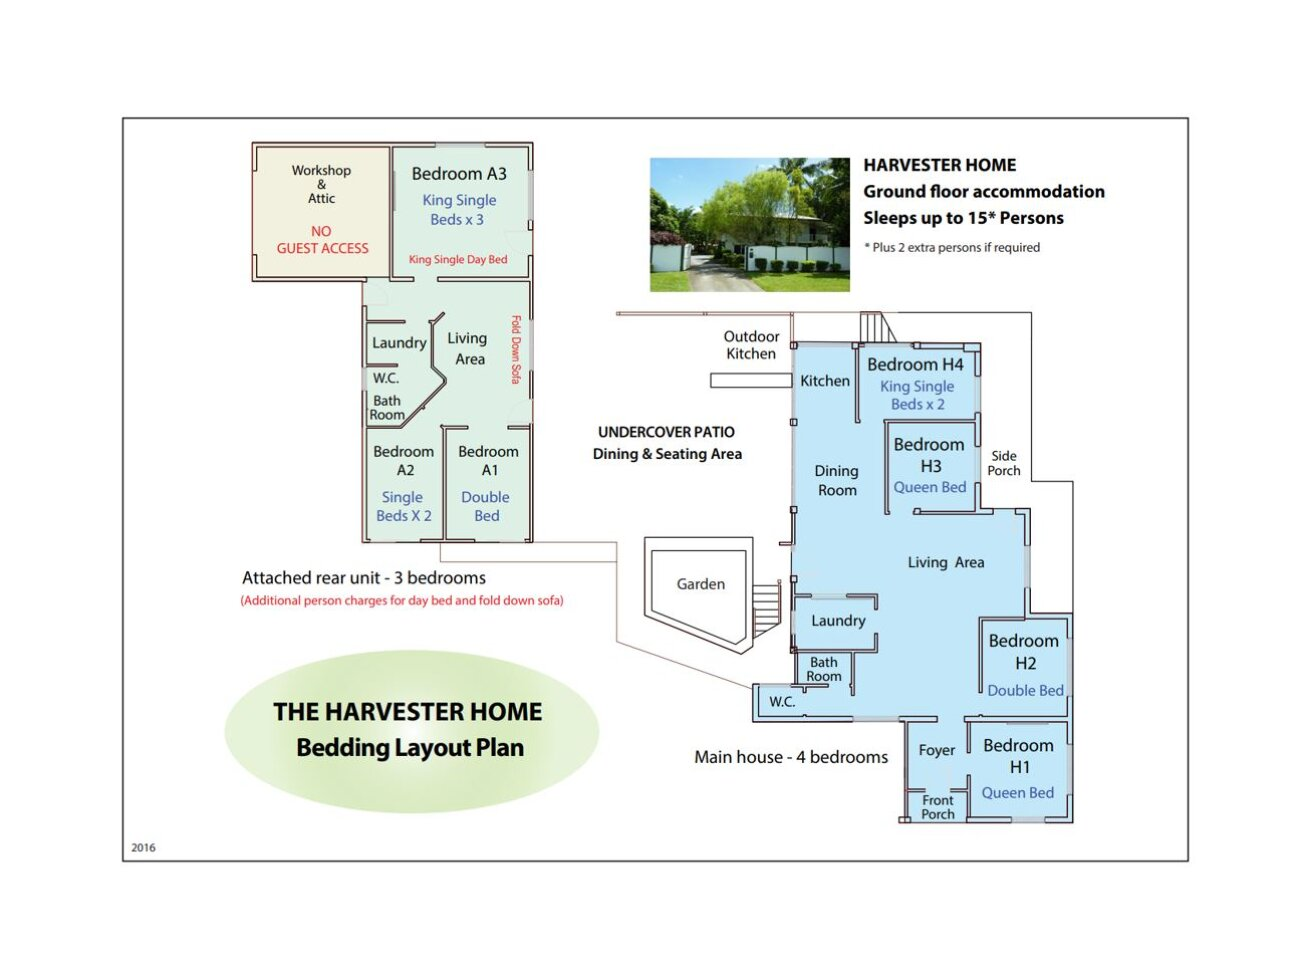 Harvester floor plan